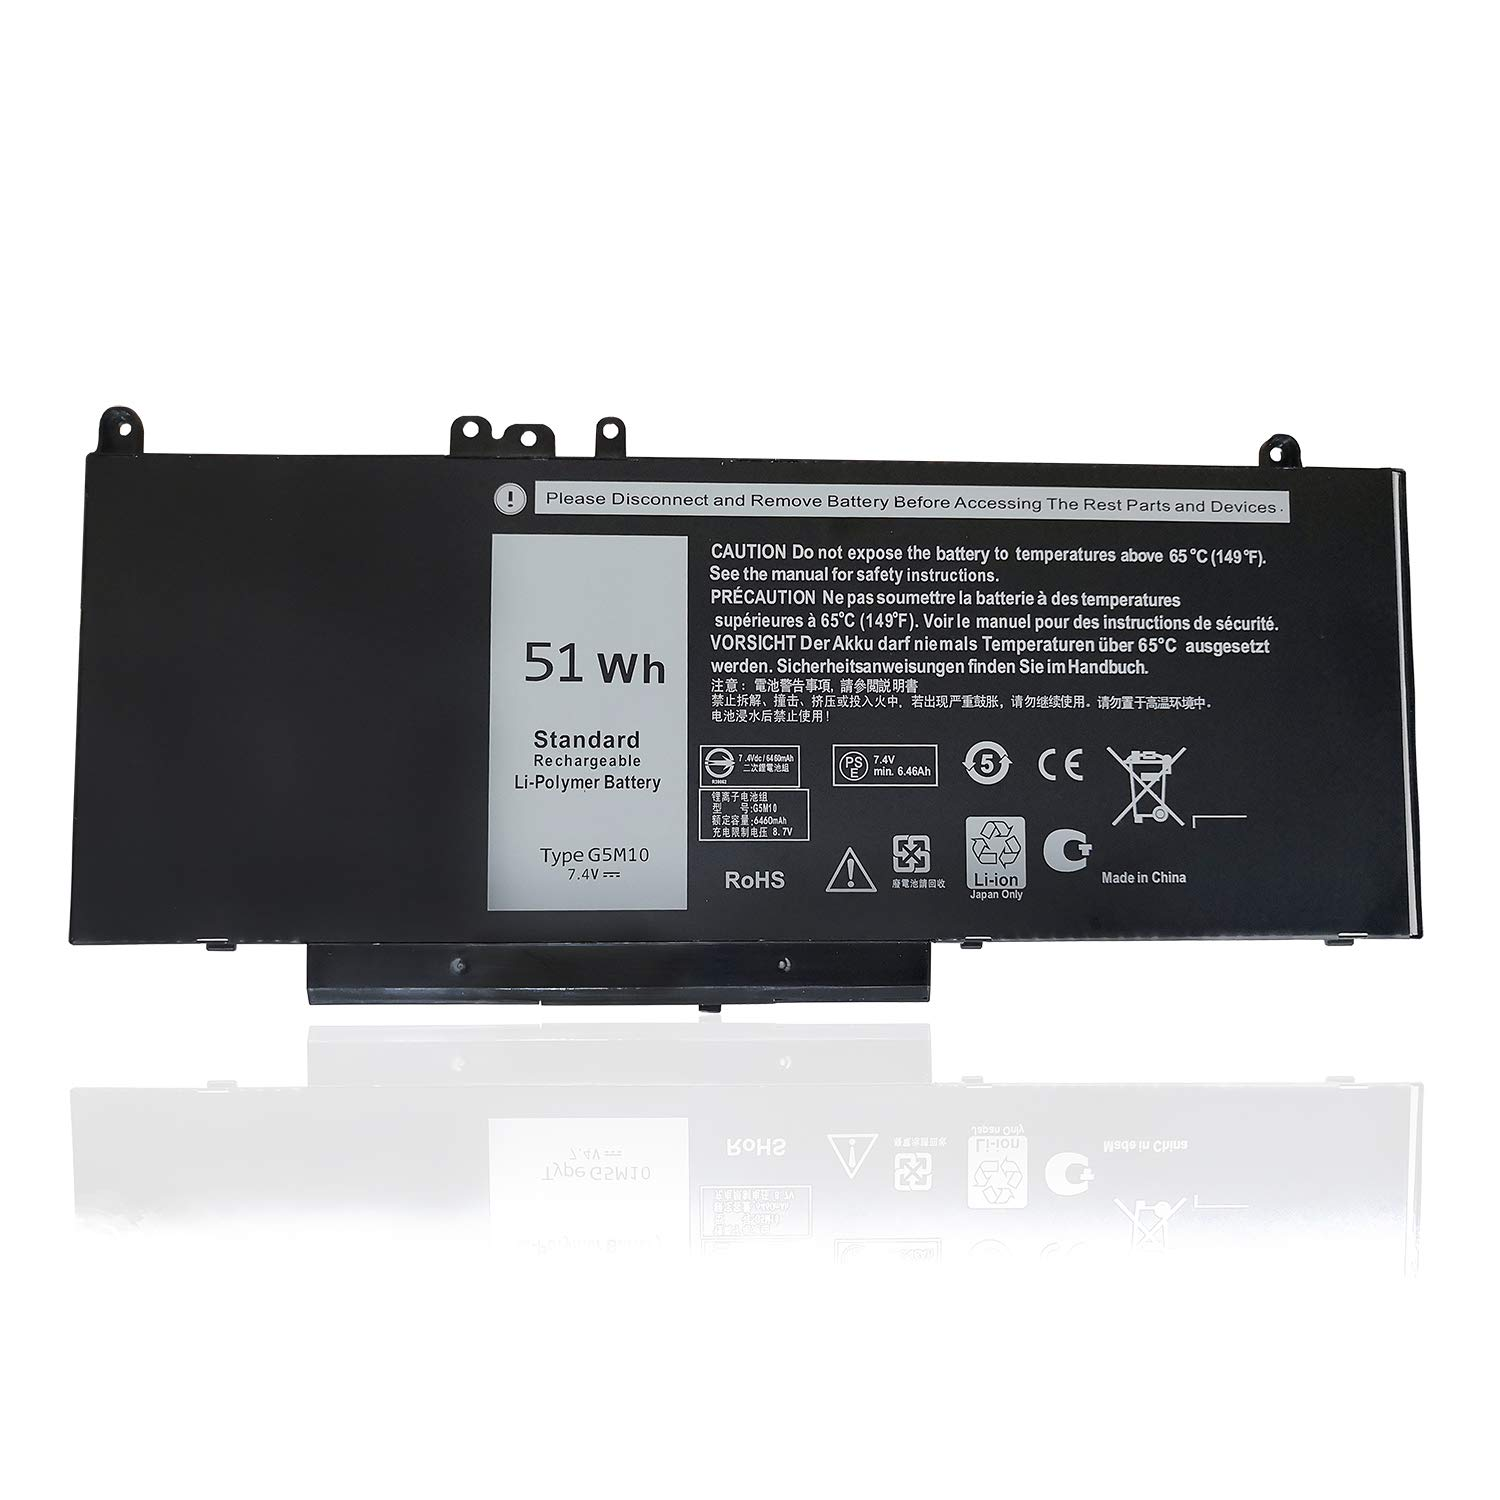 G5M10 Battery,Texmiy Replacement Laptop Battery Compatibale with Dell Latitude E5450 E5550 Notebook 15.6'', Fit for 8V5GX R9XM9 WYJC2 1KY05 - [7.4V 51Wh]